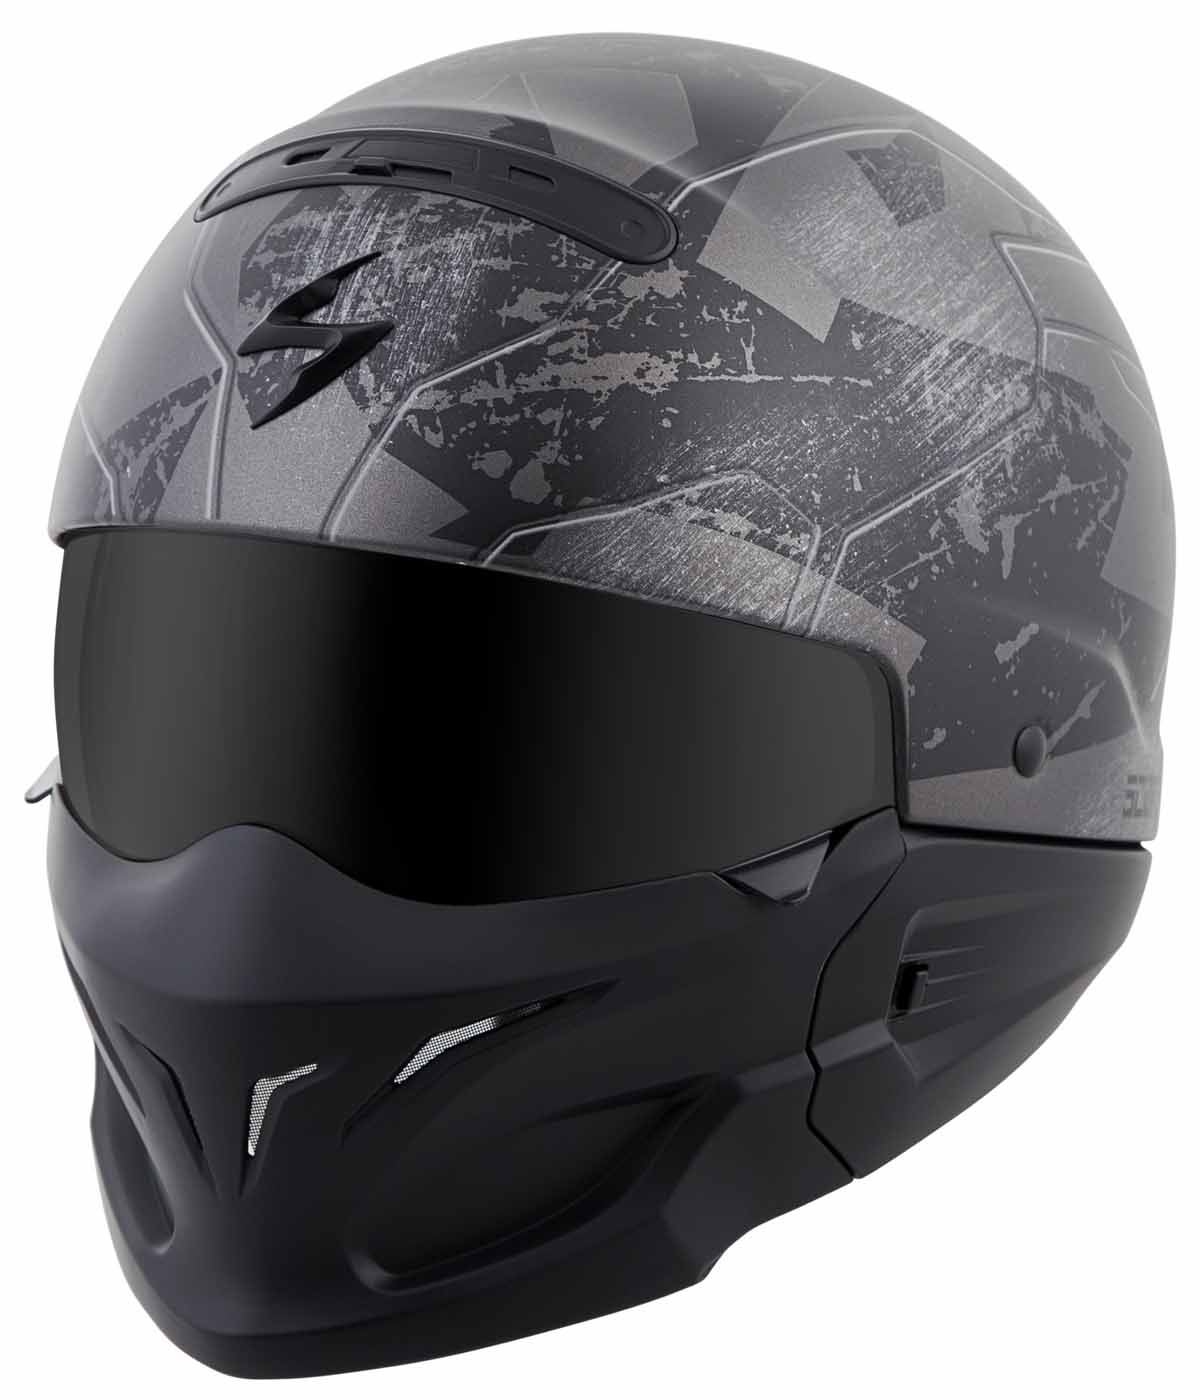 Scorpion Covert Convertible 3-in-1 Half/Full Face Helmet DOT Approved XS-3XL